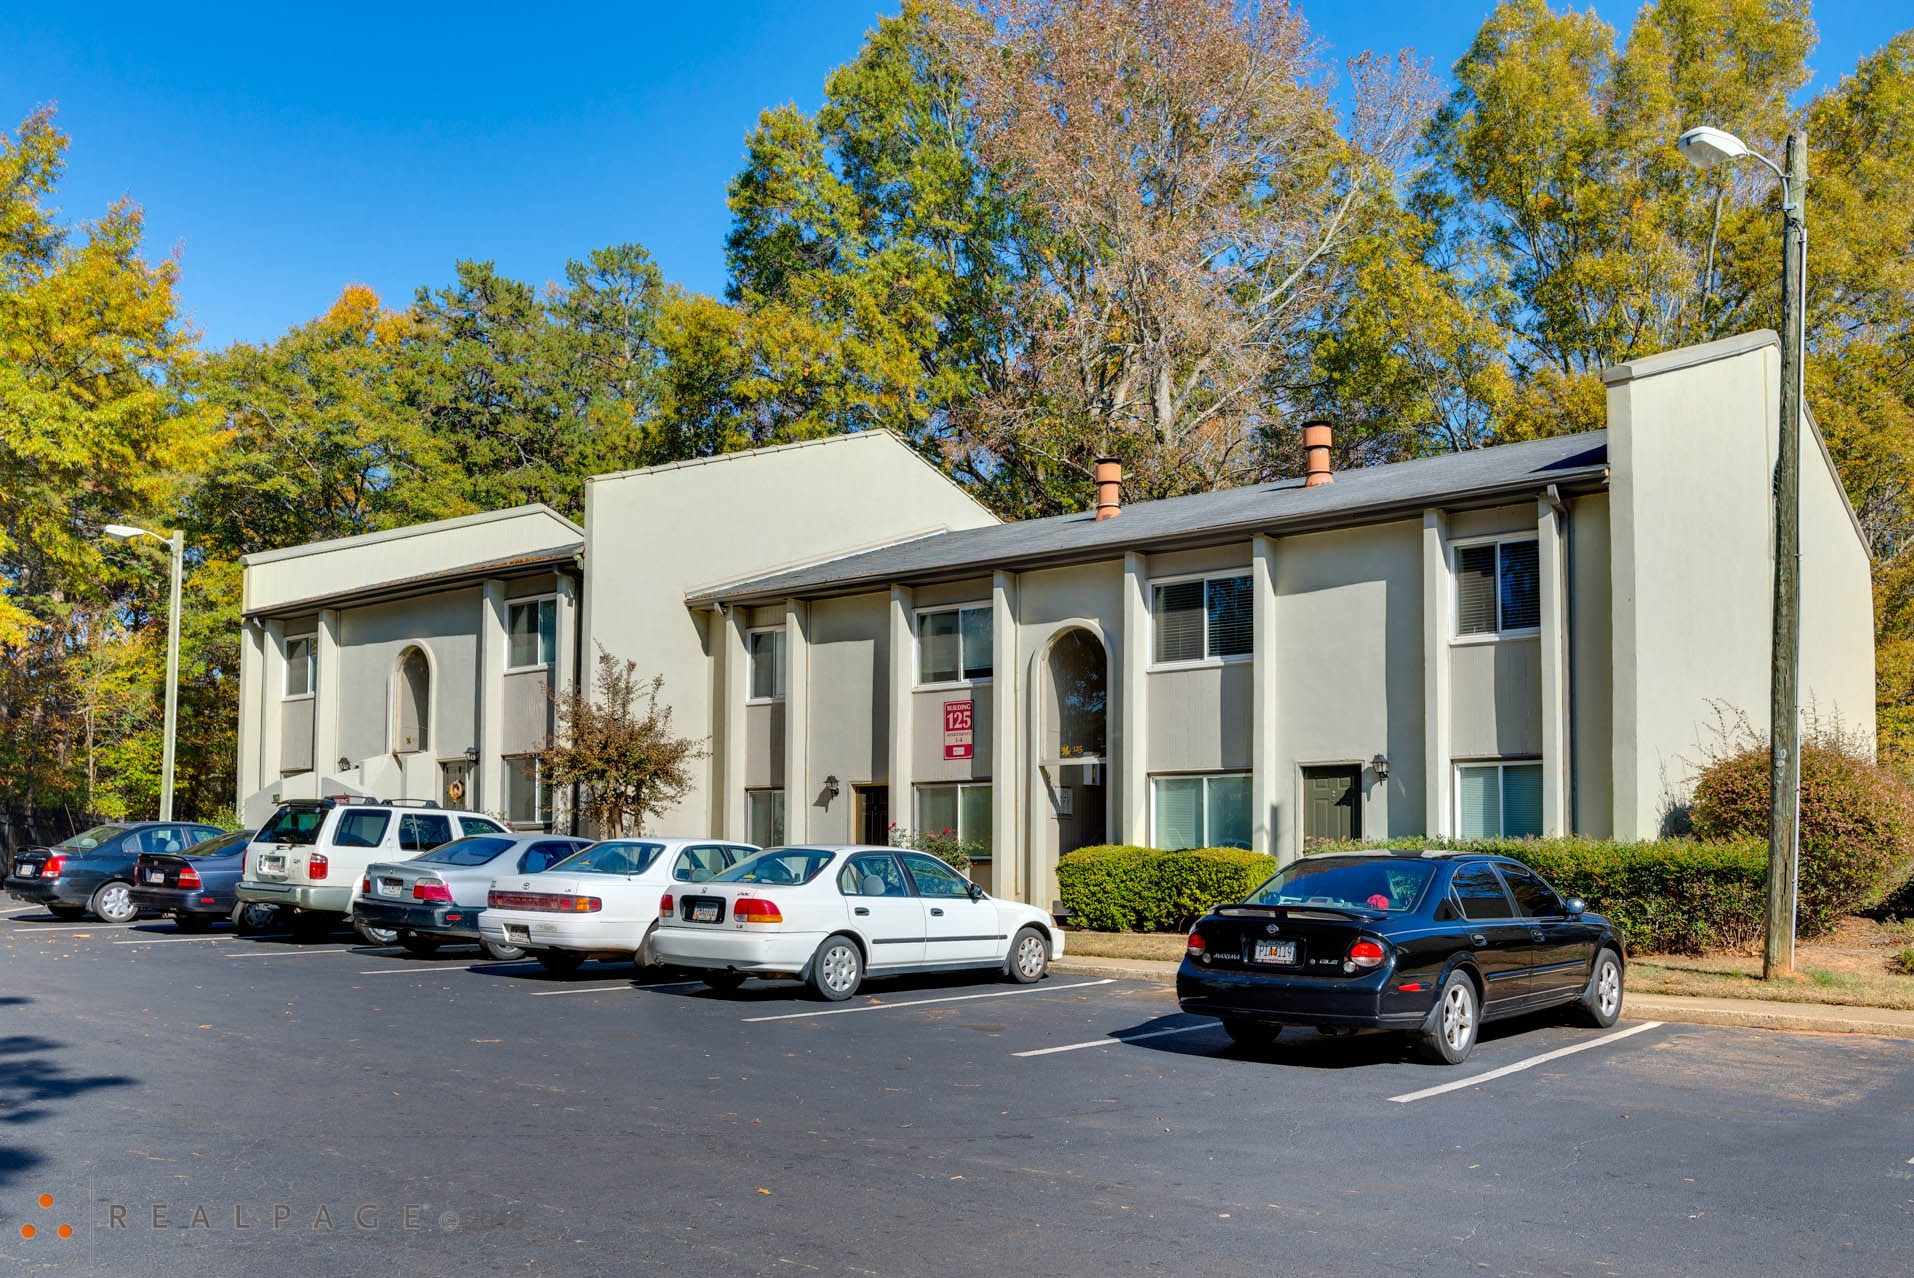 The Oaks Apartments - Athens, GA Apartments for rent